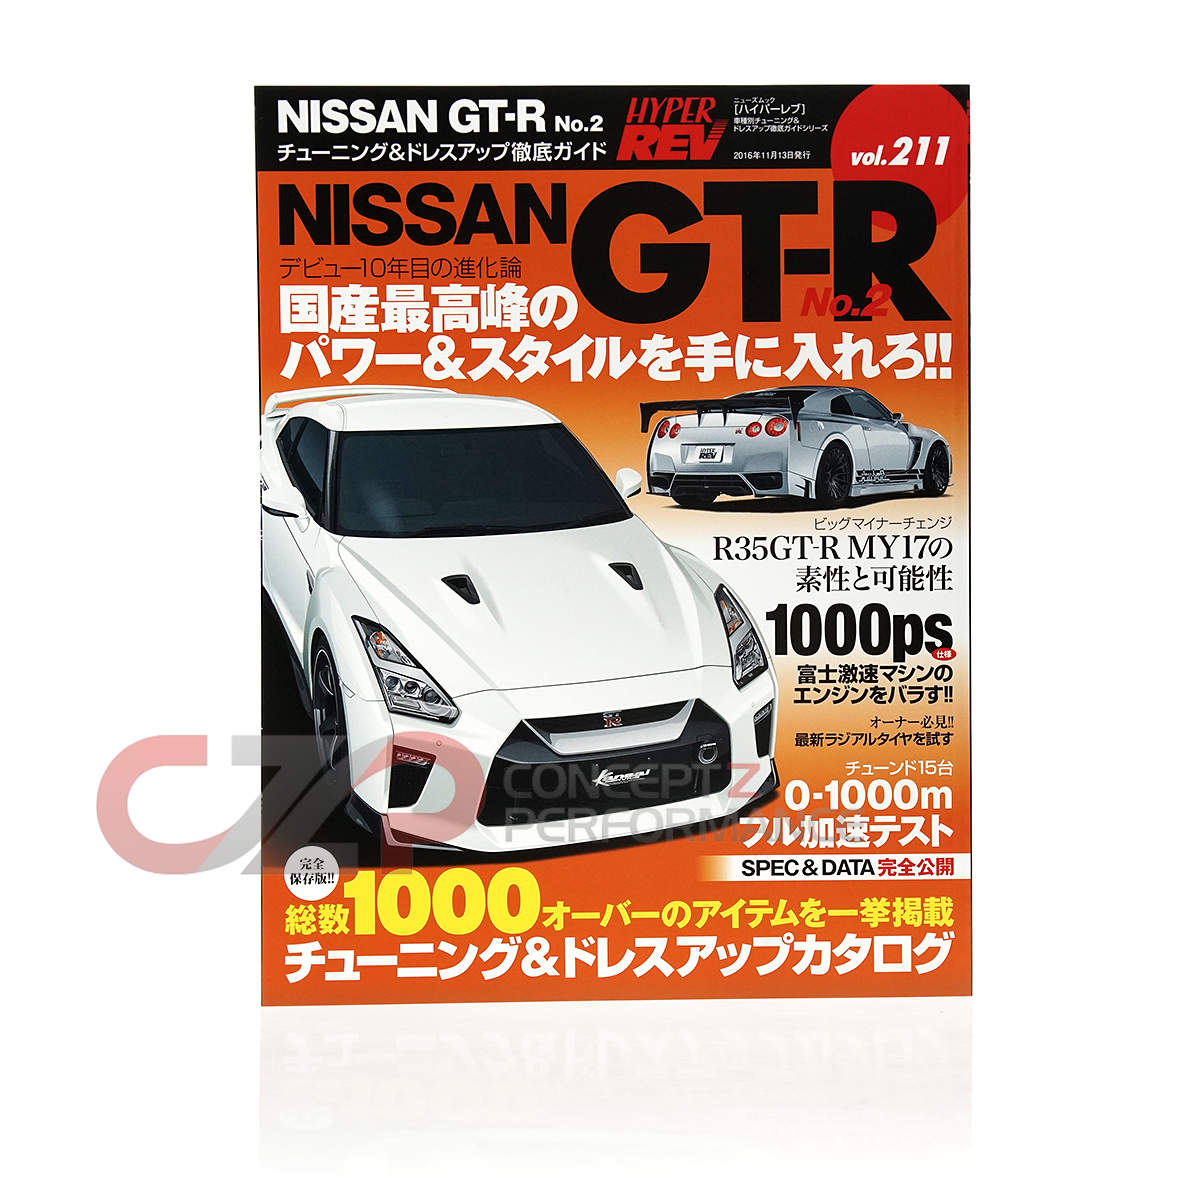 Hyper Rev Magazine Volume No. 211 Nissan GT-R R35